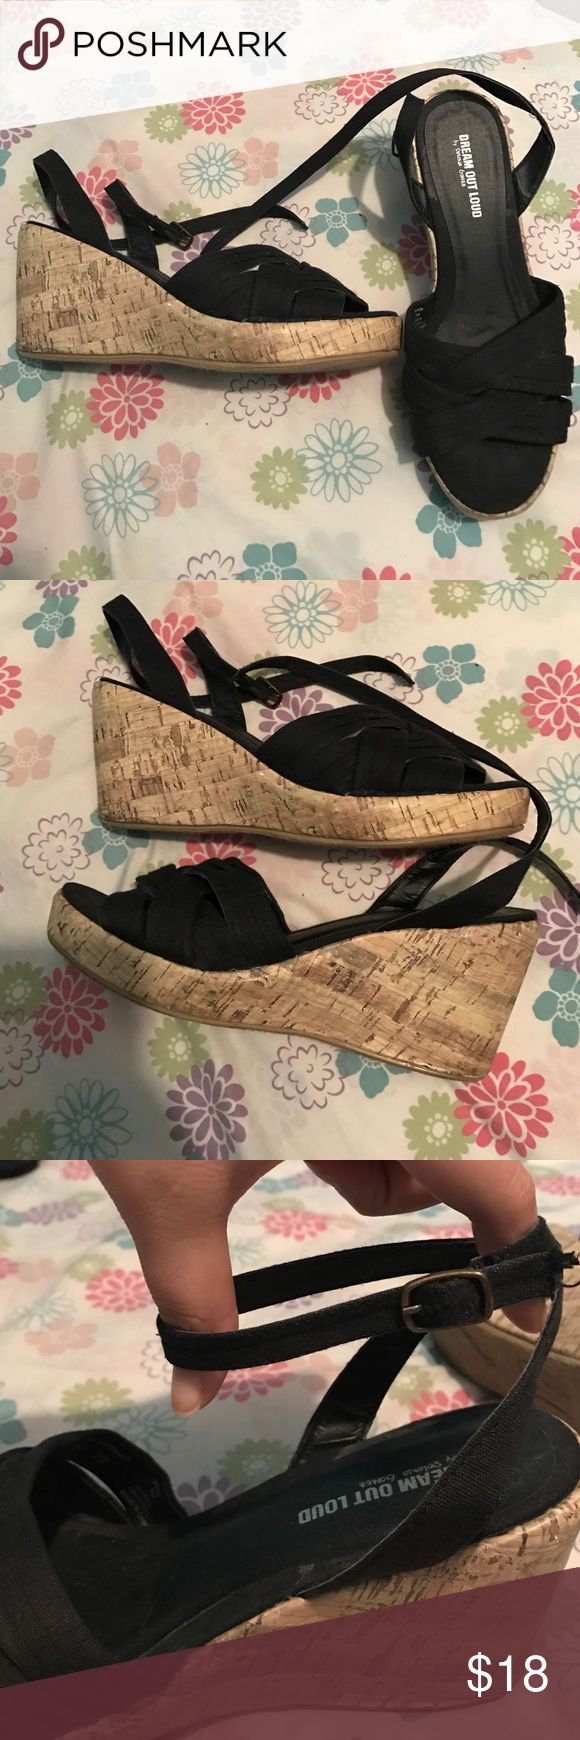 Dream out loud by Selena Gomez wedges Very cute wedges and only worn once to a wedding! Shoes Wedges